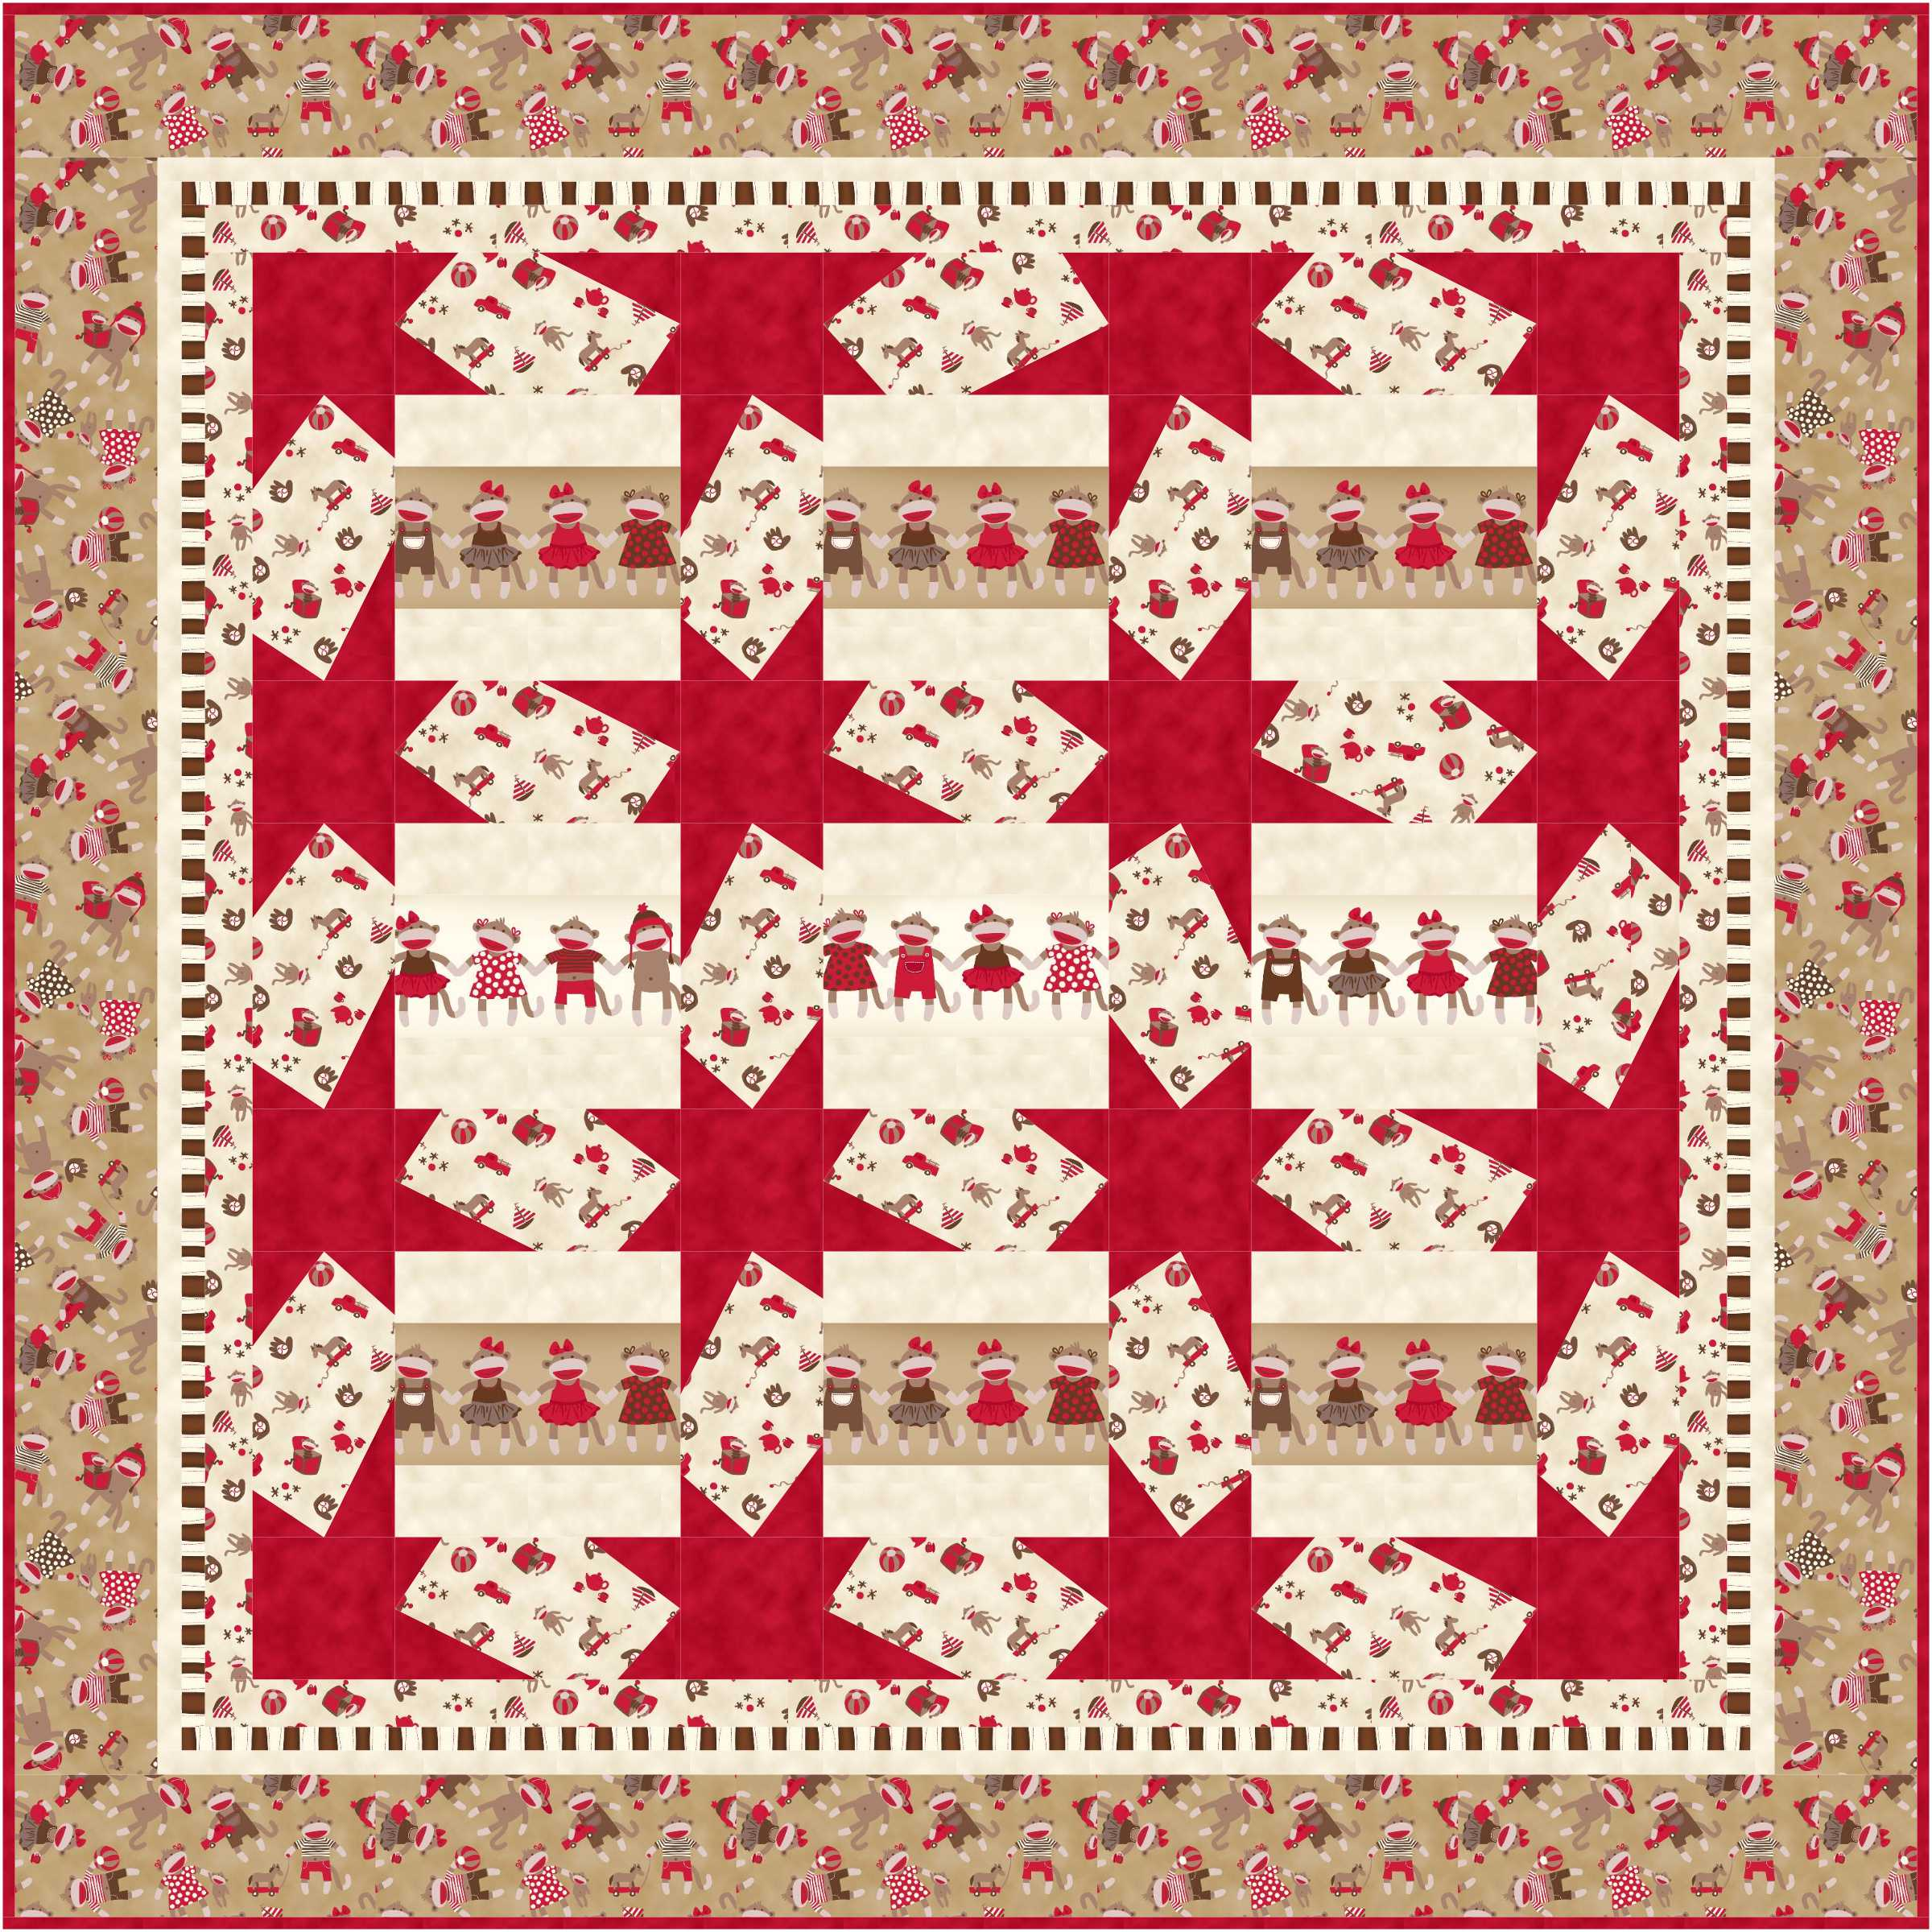 Baby crib quilt patterns free - I Am Most Happy To Share With You Bethany Shackleford Has Designed A Sequel To Her Last Sock Monkey Fabric Collection Meet The Zoe Zack Quilts I Have